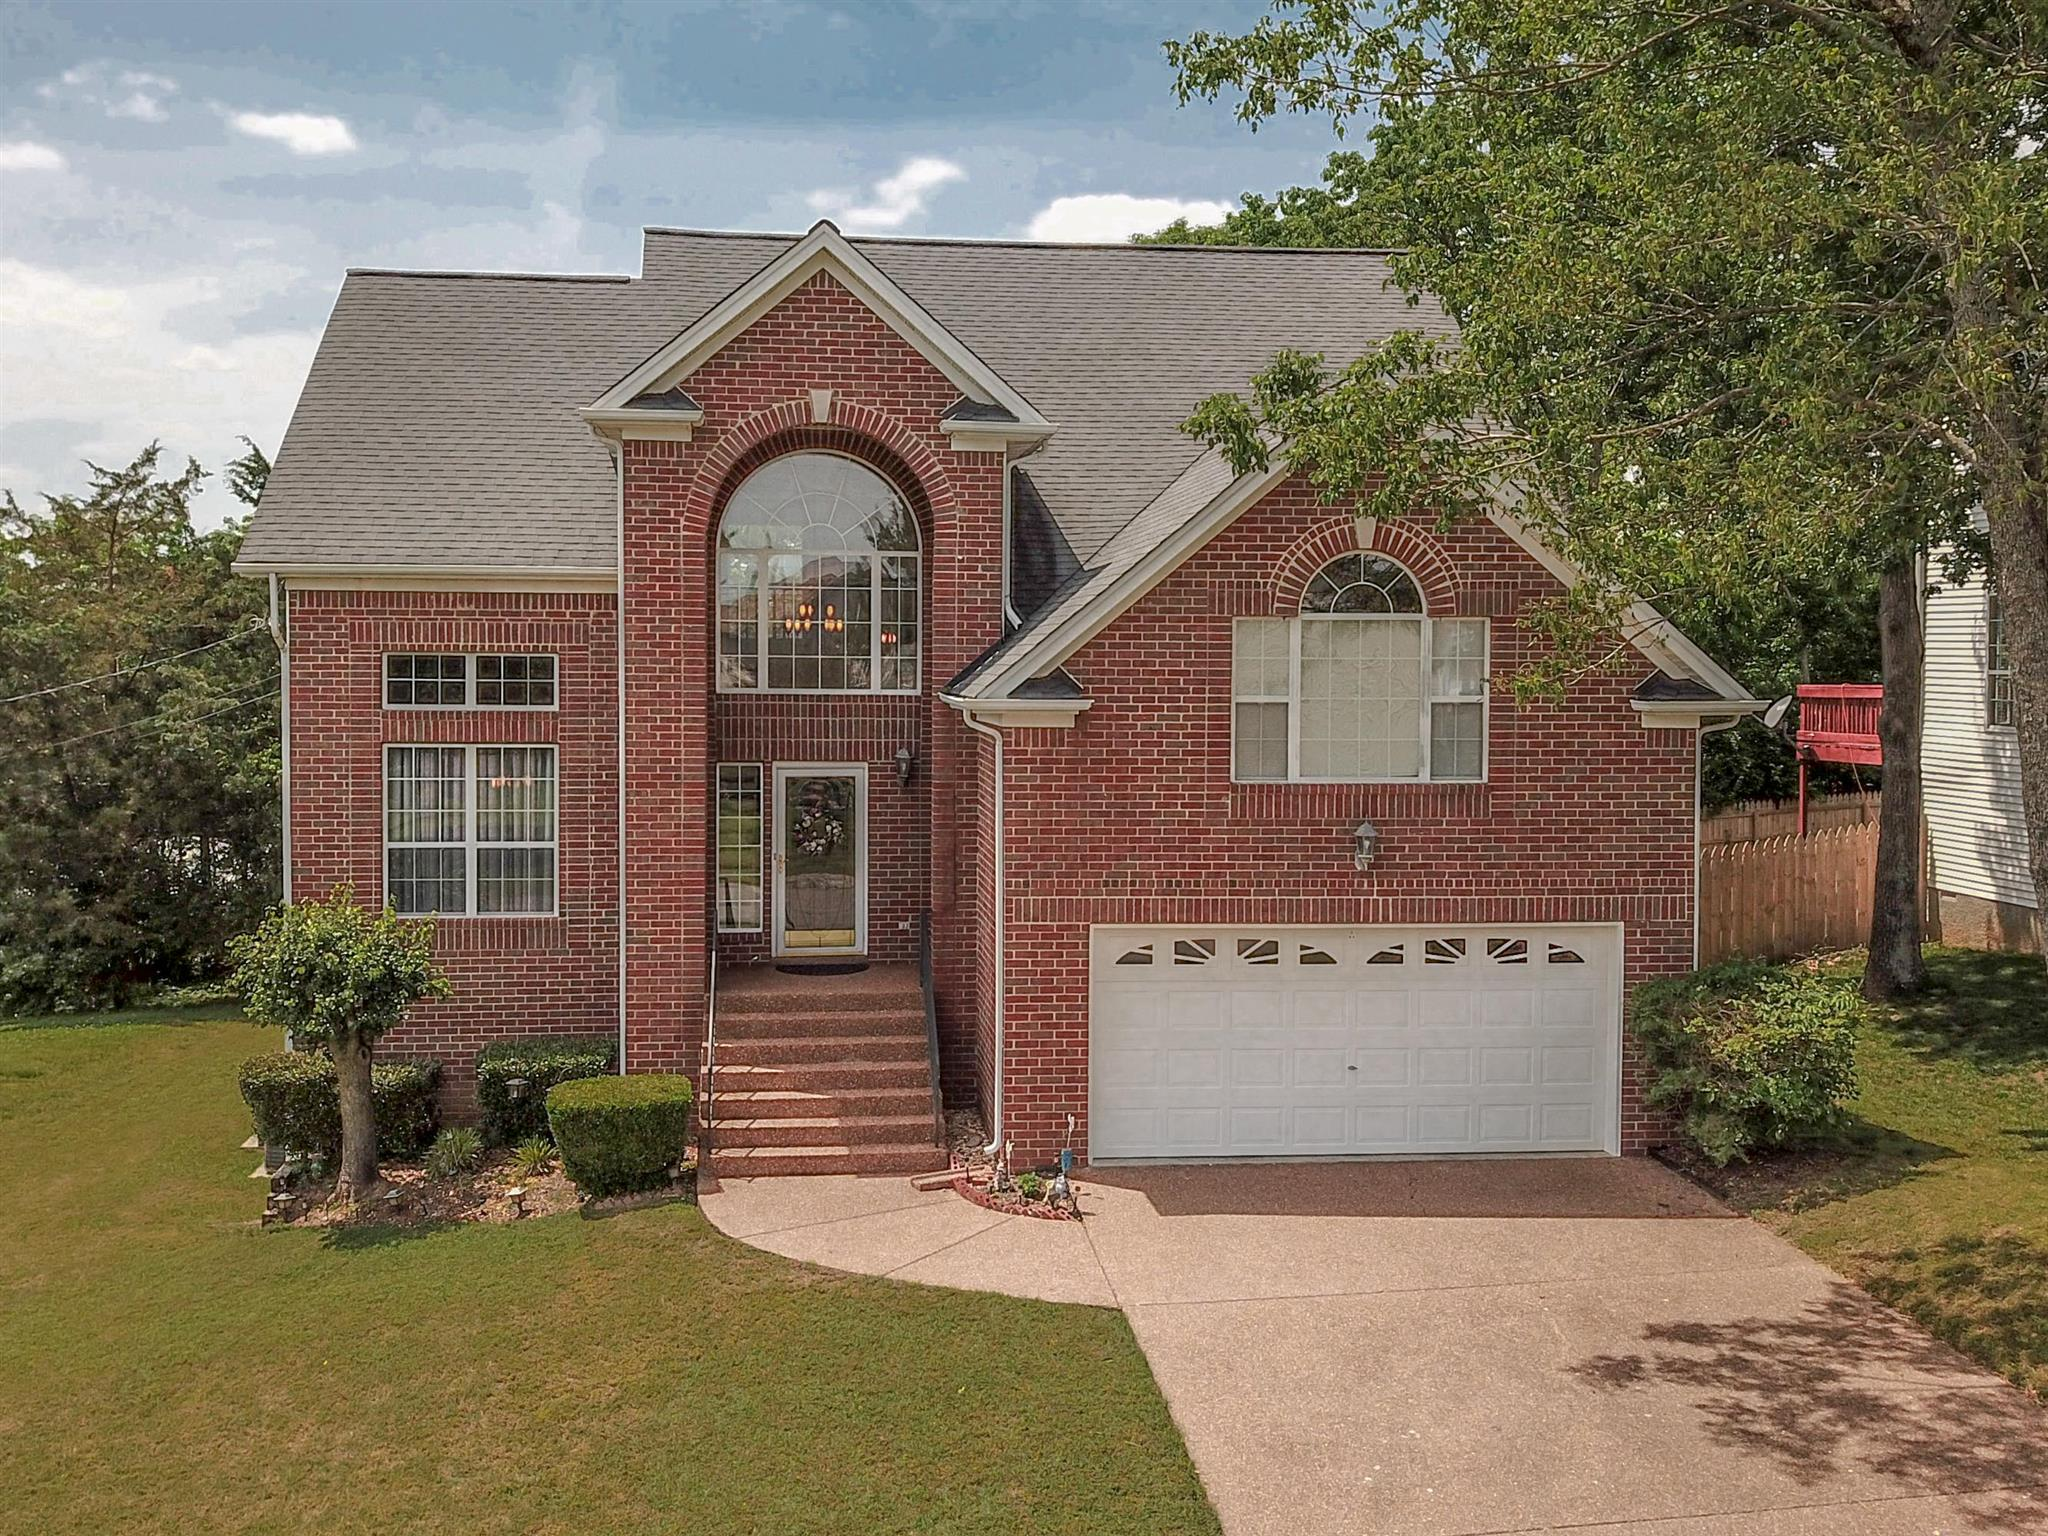 162 W Harbor, Hendersonville in Sumner County County, TN 37075 Home for Sale